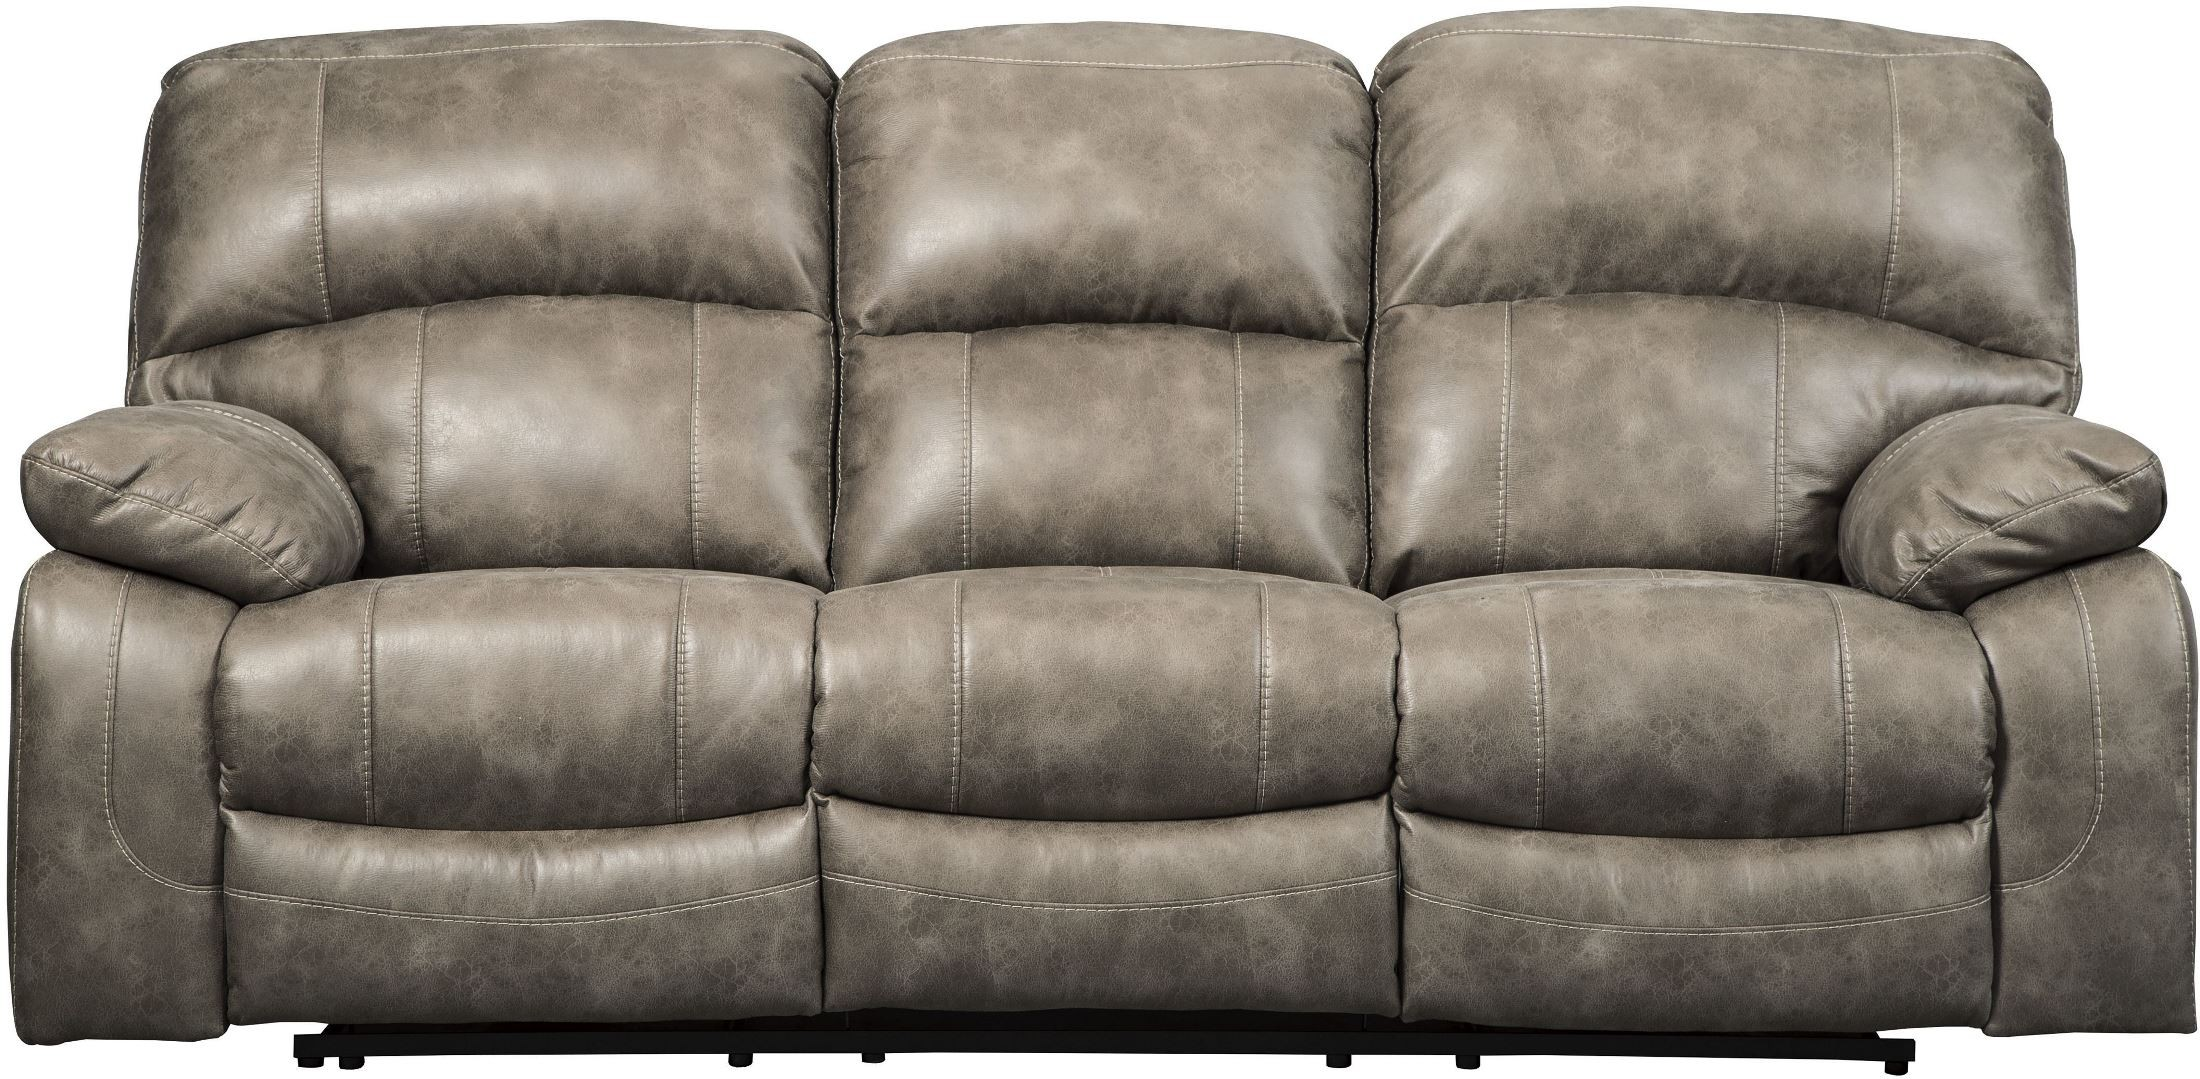 crescent power sofa recliner with headrest cushion ideas for light brown dunwell driftwood reclining adjustable